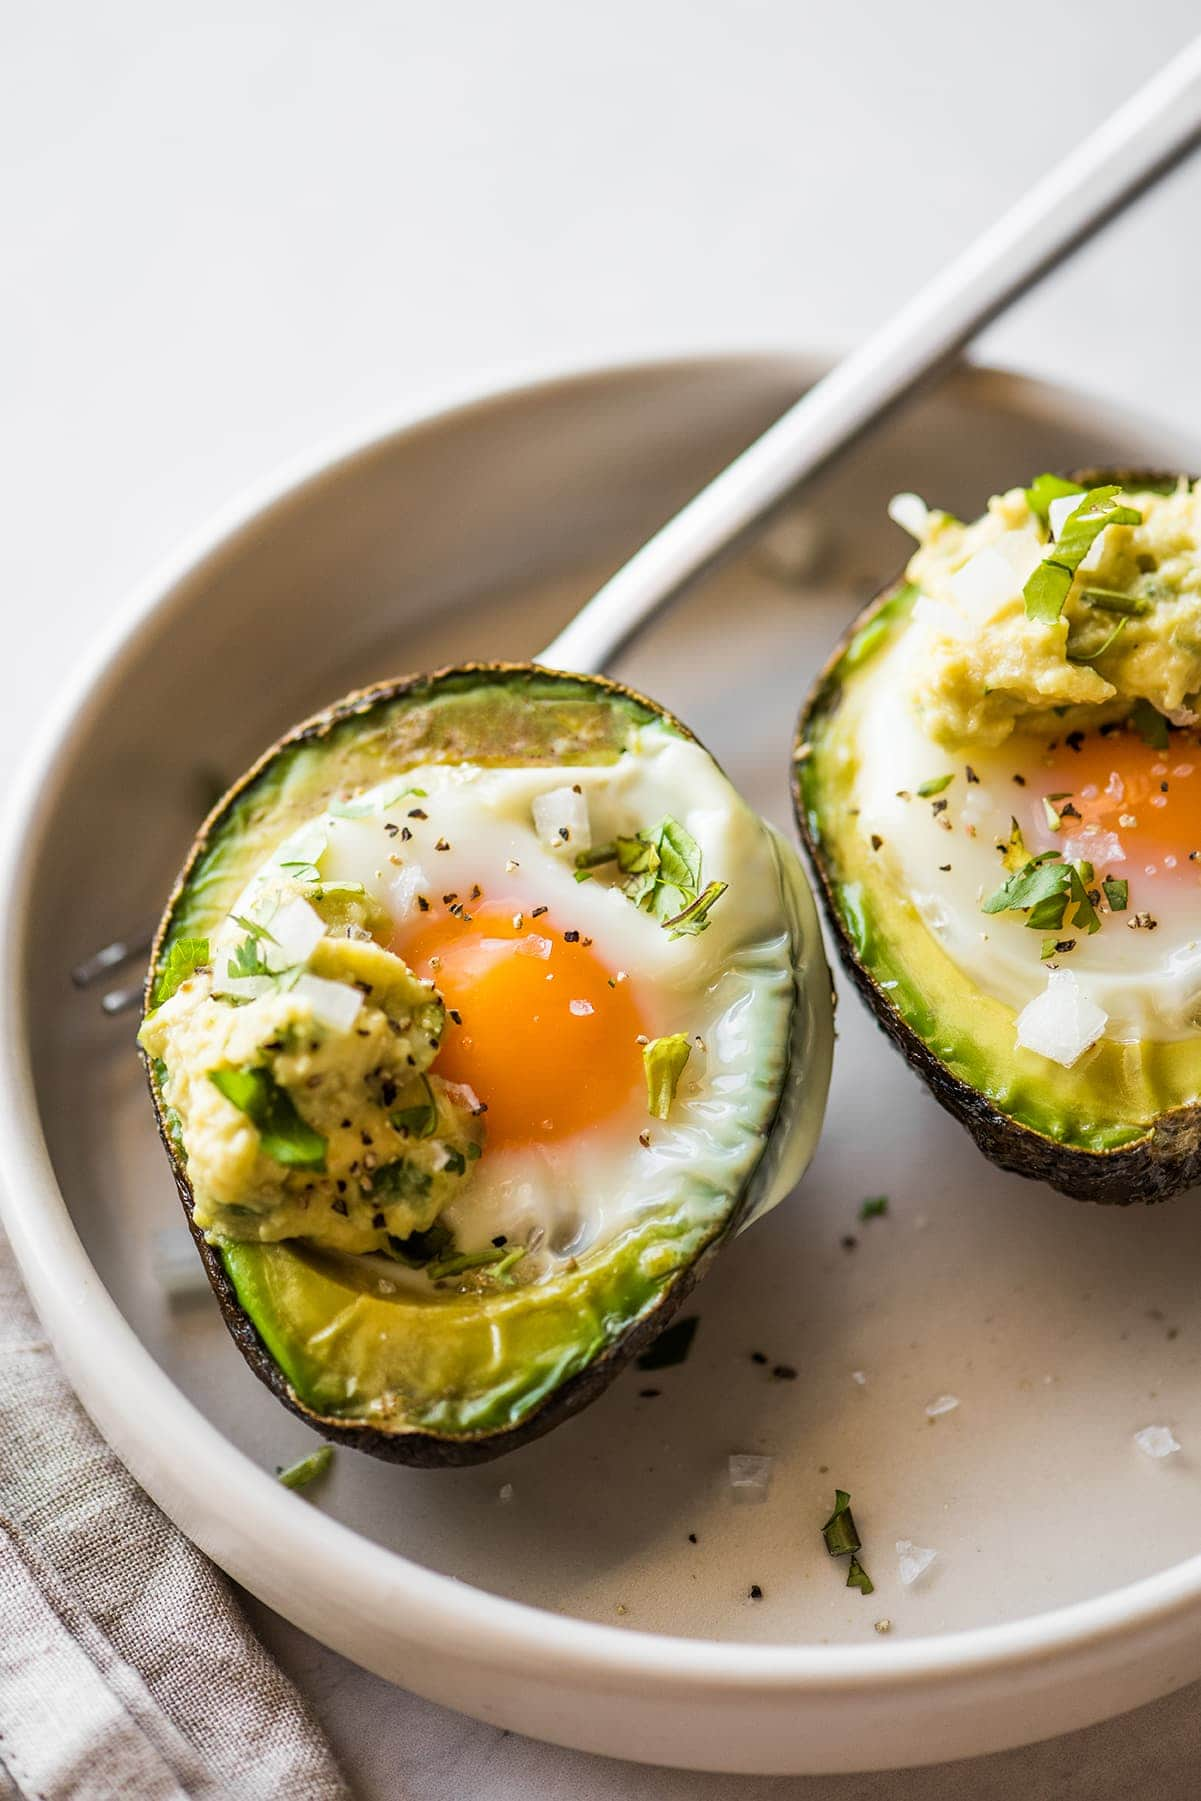 Avocado Egg Bake in a bowl seasoned with salt and pepper.